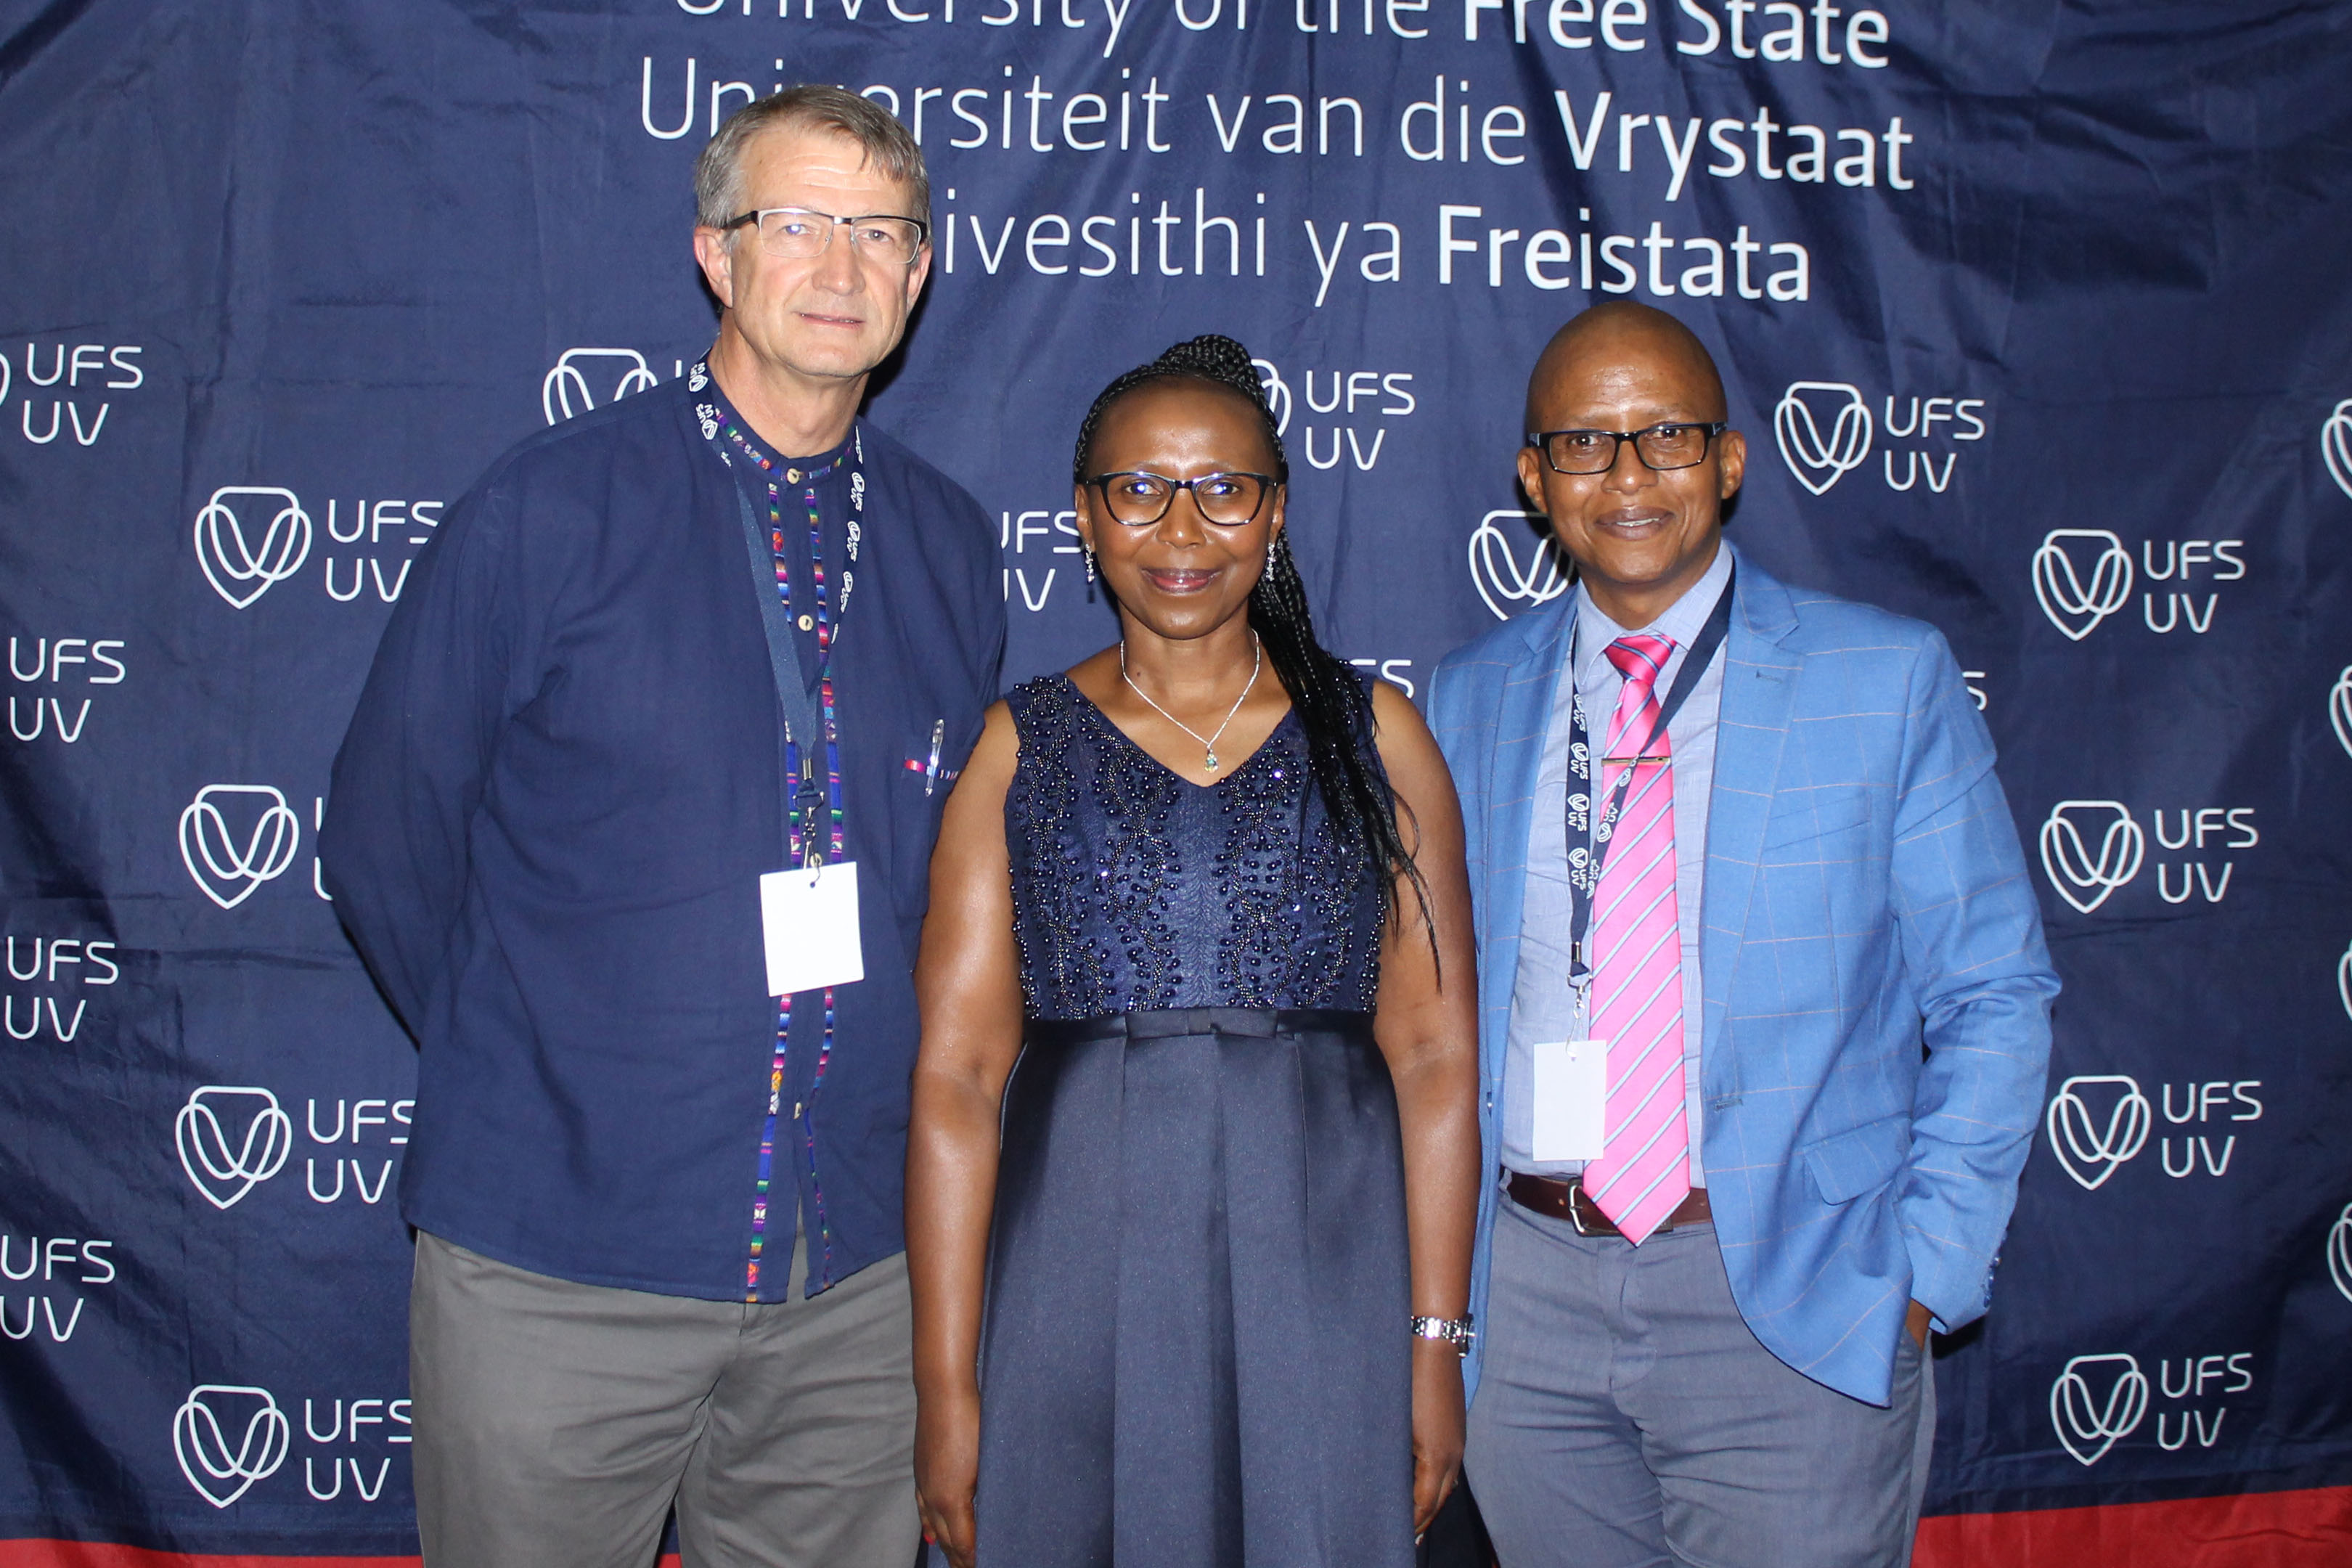 from the left: Thomas Stewart, Lecturer in the UFS Department of Urban and Regional Planning; Tshidi Koloi, MEC of Public Works, Infrastructure and Human Settlements; and Pura Mgolombane (Dean of Student Affairs at the UFS).